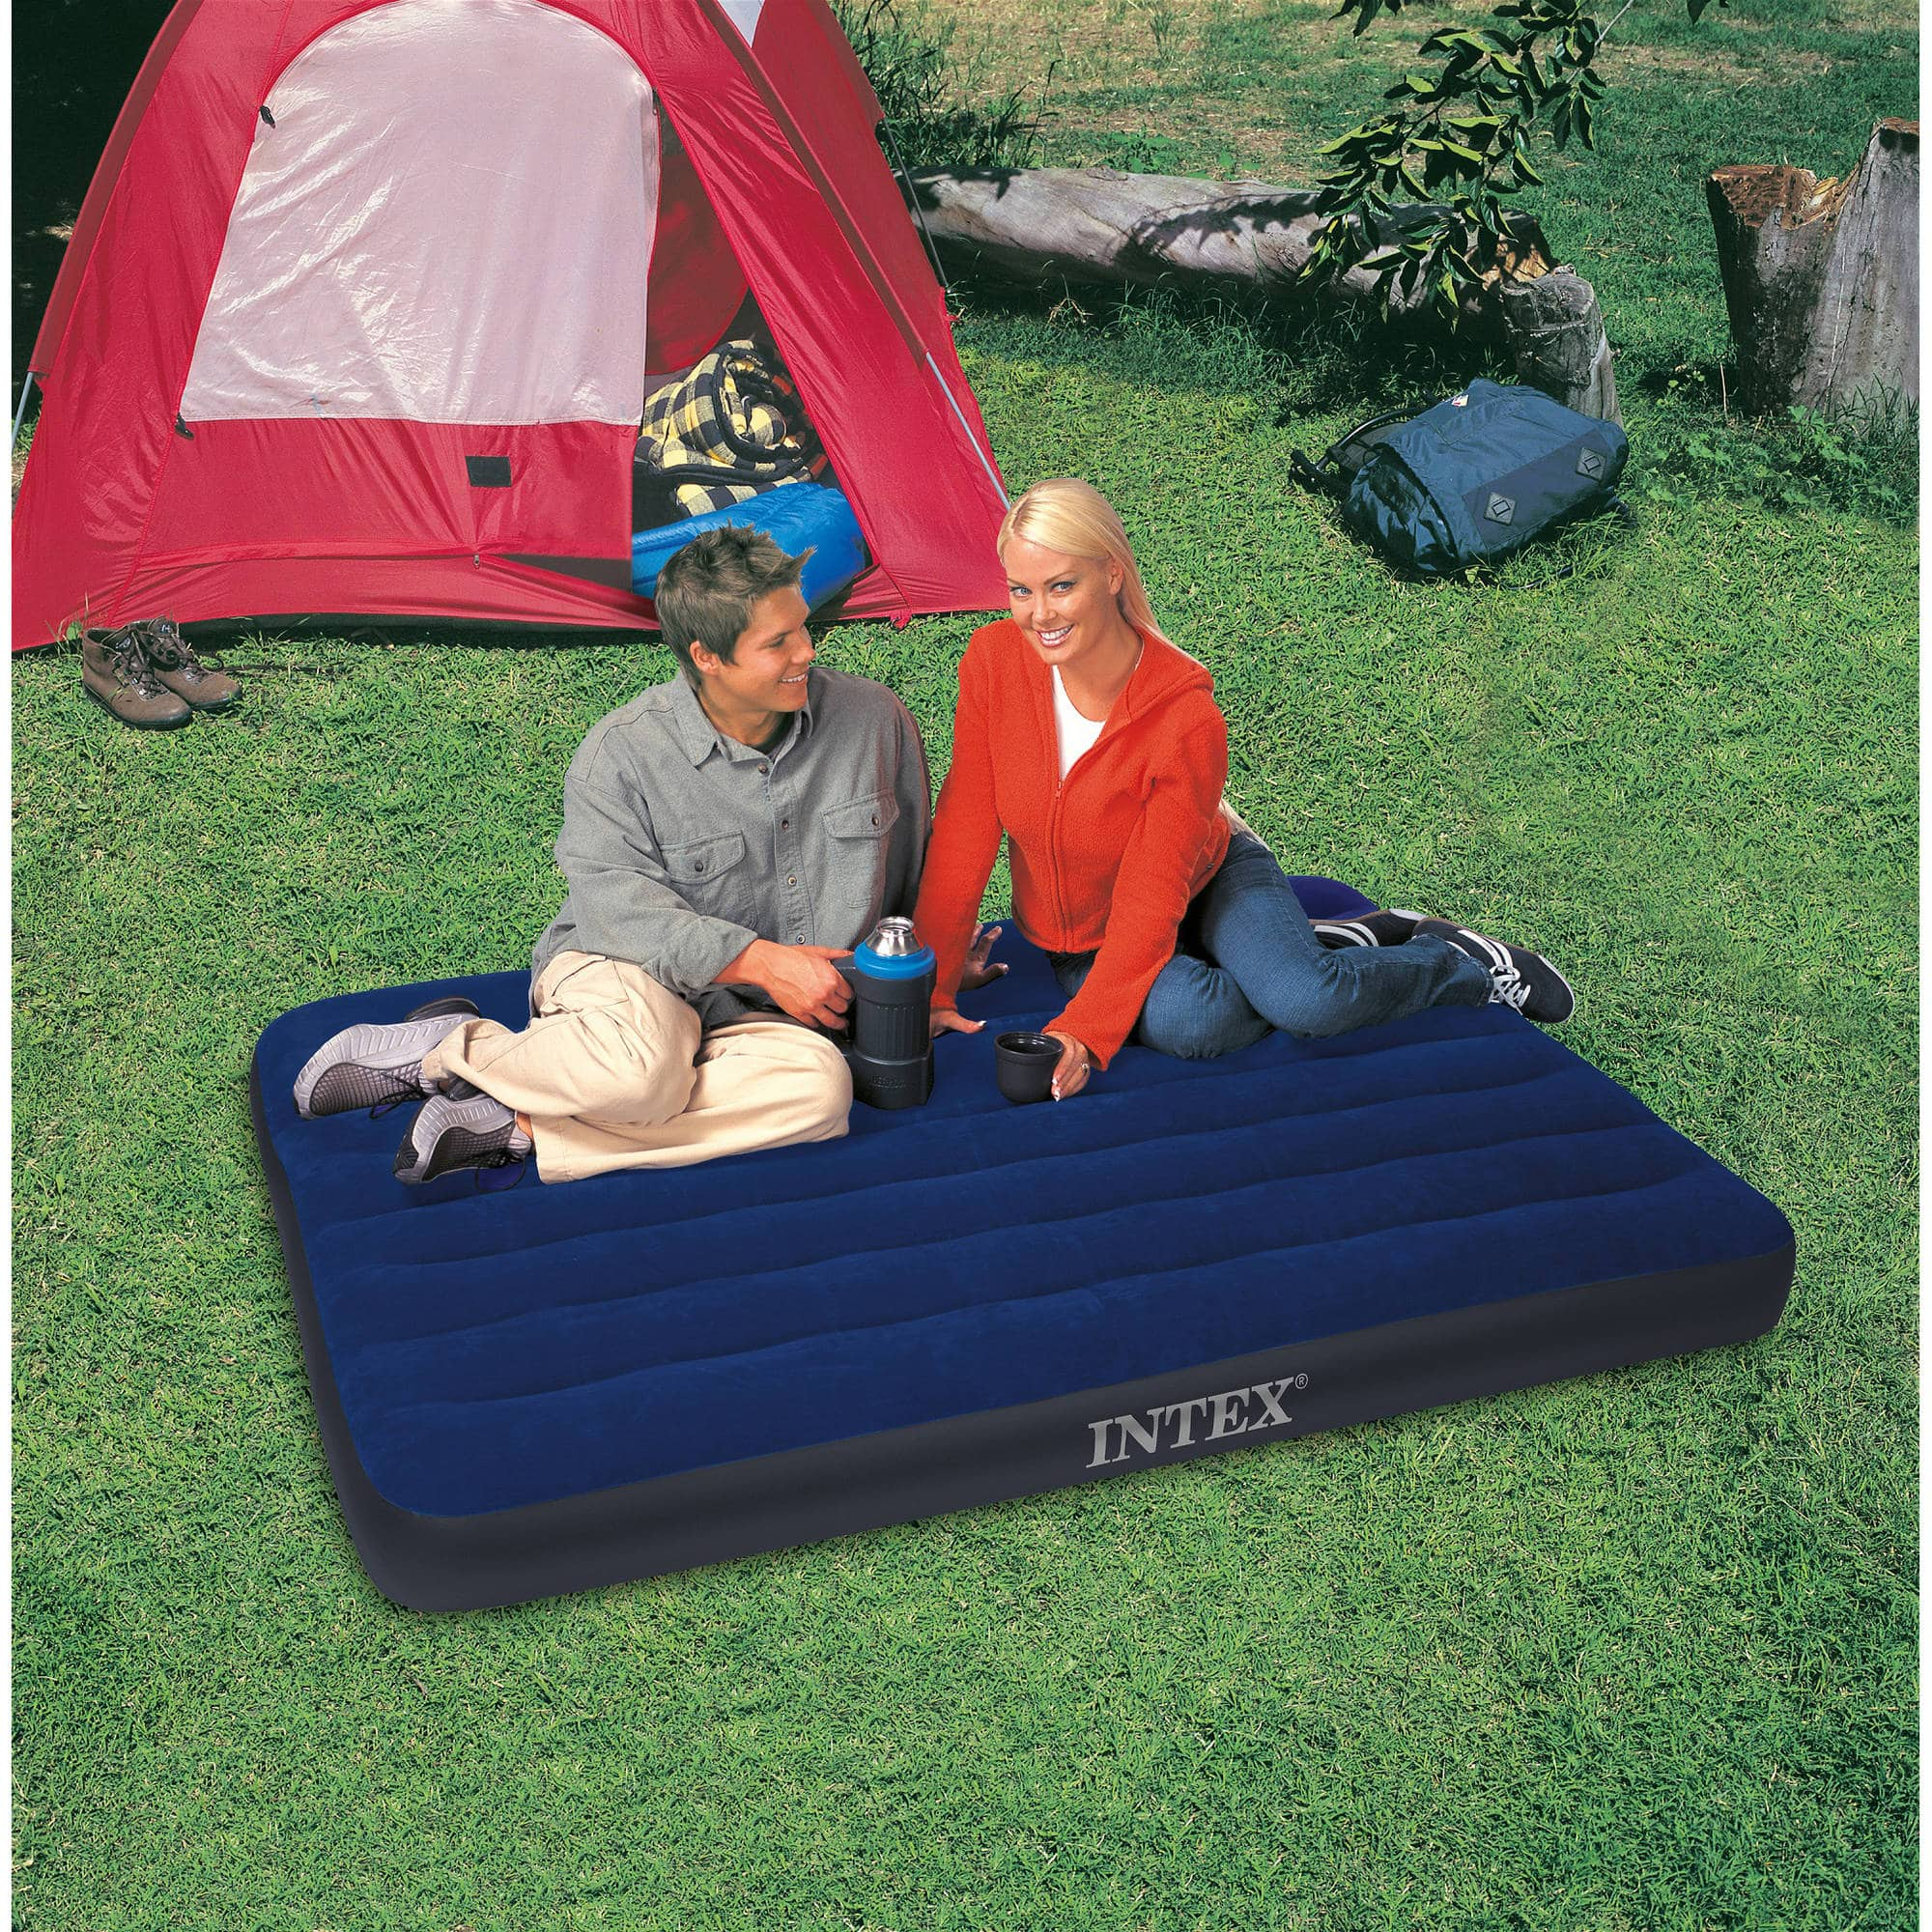 Intex Classic Downy Airbed (Full) $6.93 + Free Store Pickup